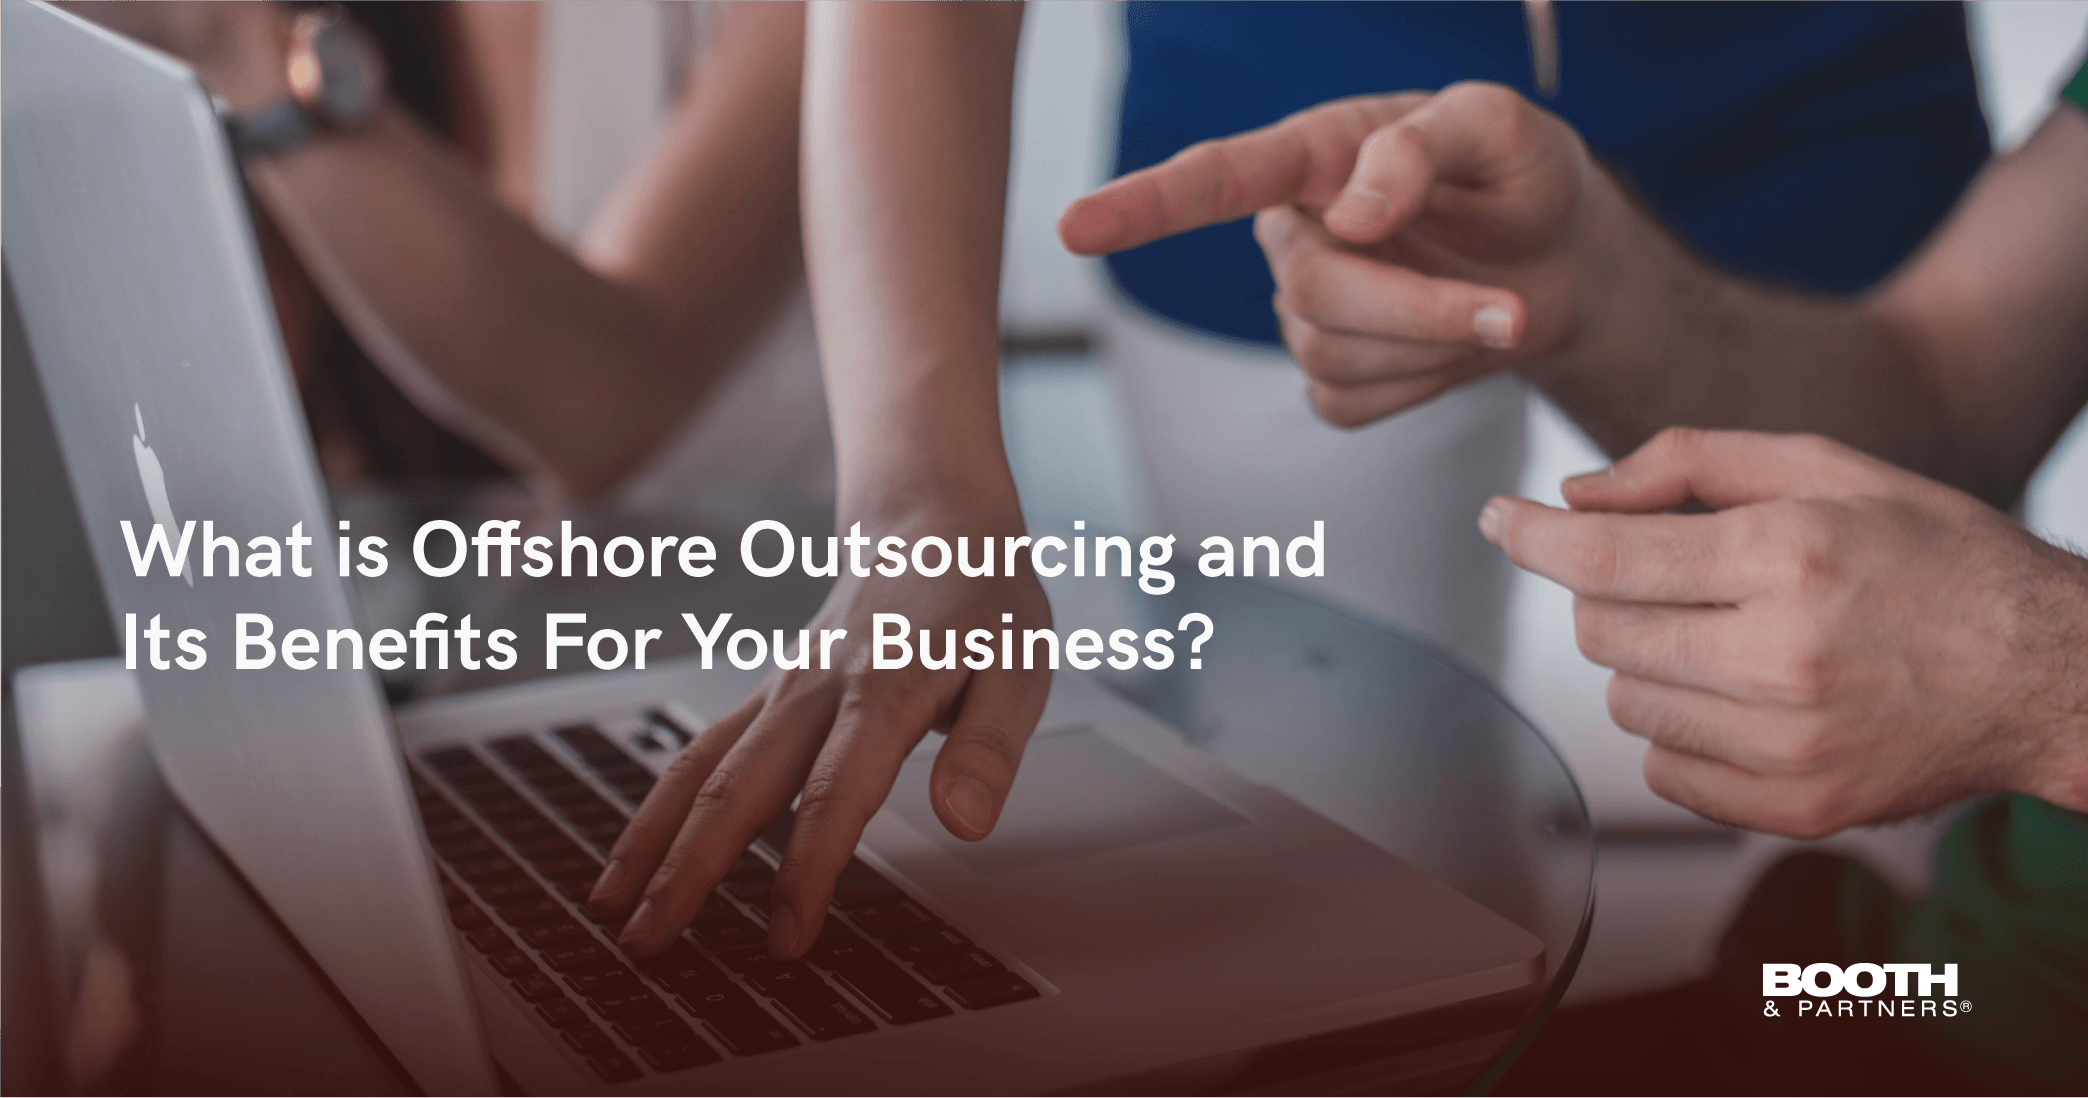 What Is Offshore Outsourcing And Its Benefits For Your Business